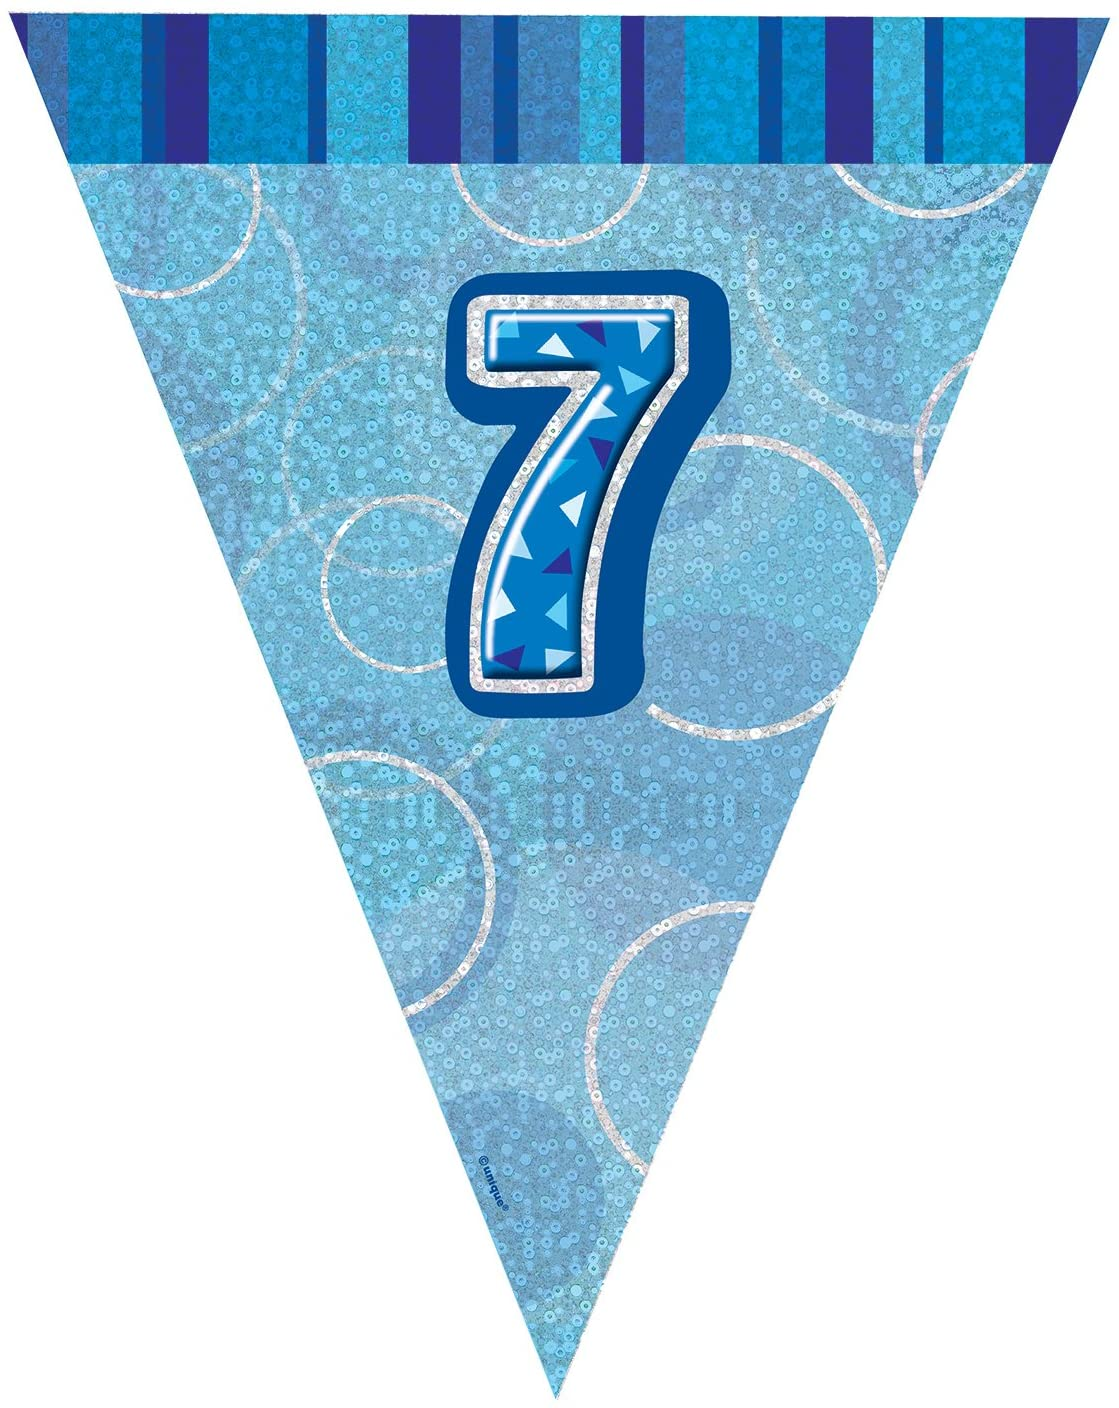 Unique Party 92147 - 9ft Foil Glitz Blue Happy 7th Birthday Bunting Flags